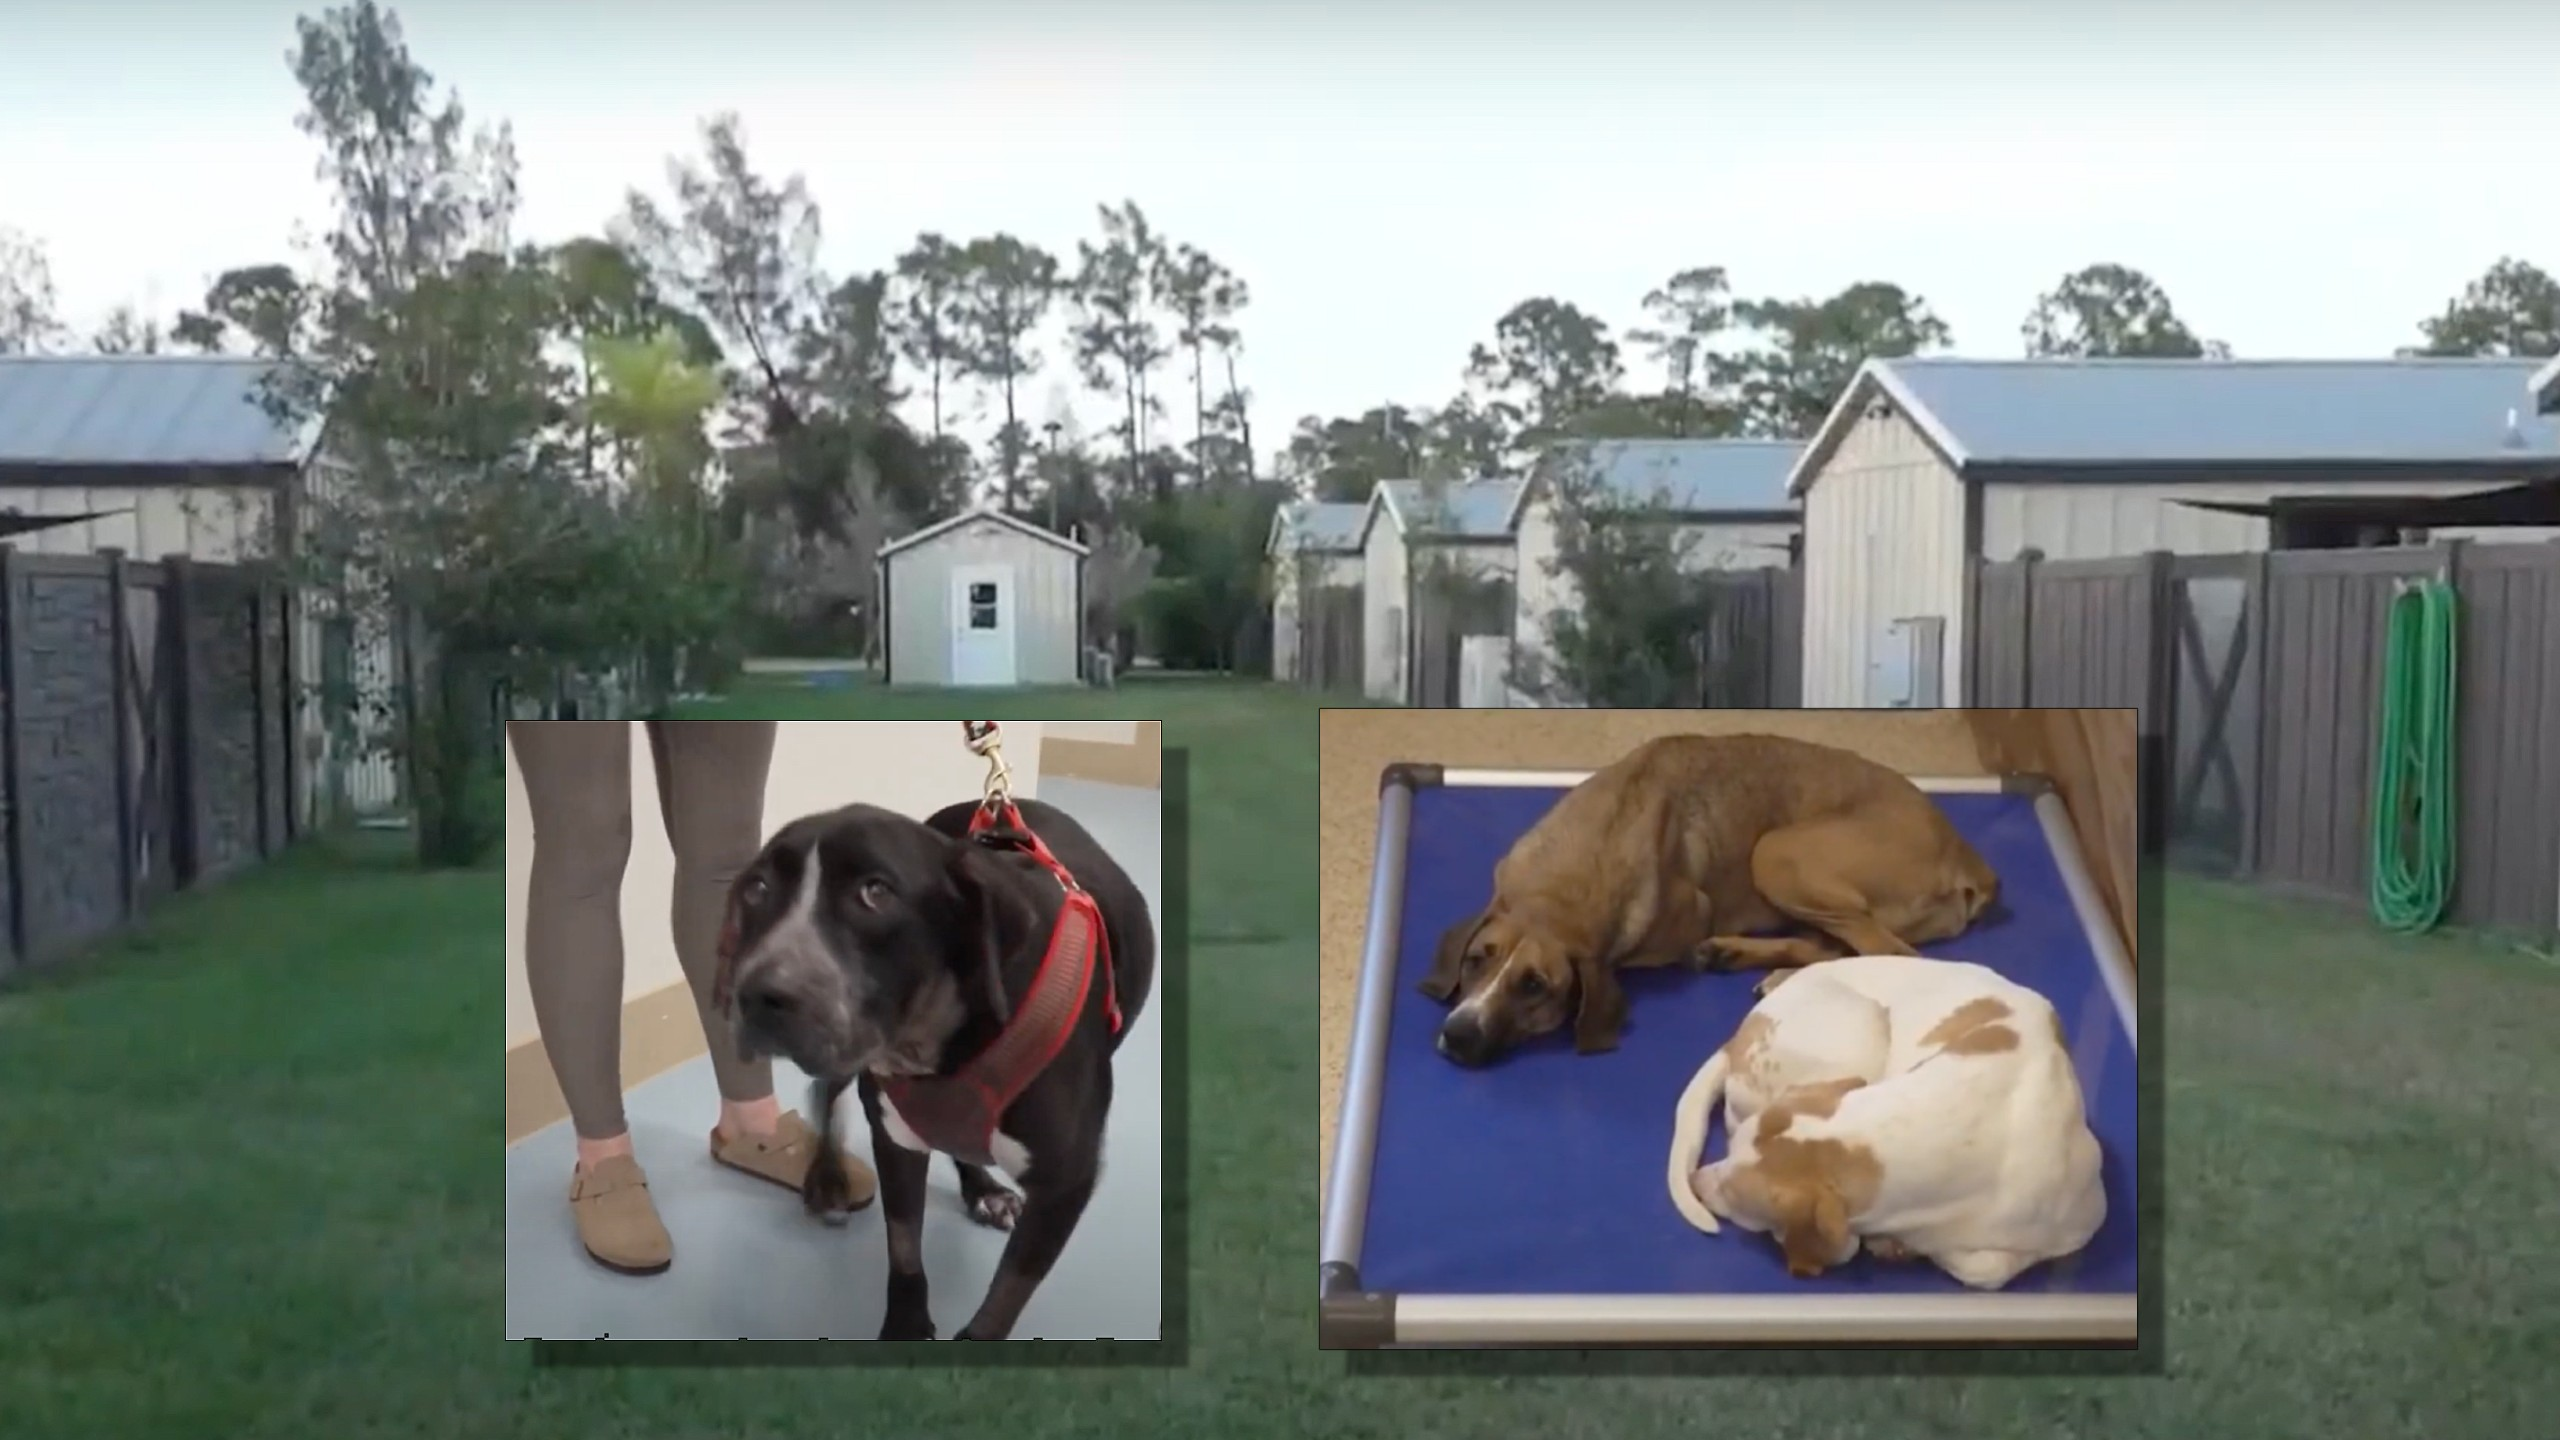 Big Dog Ranch Rescue gives dogs a second chance